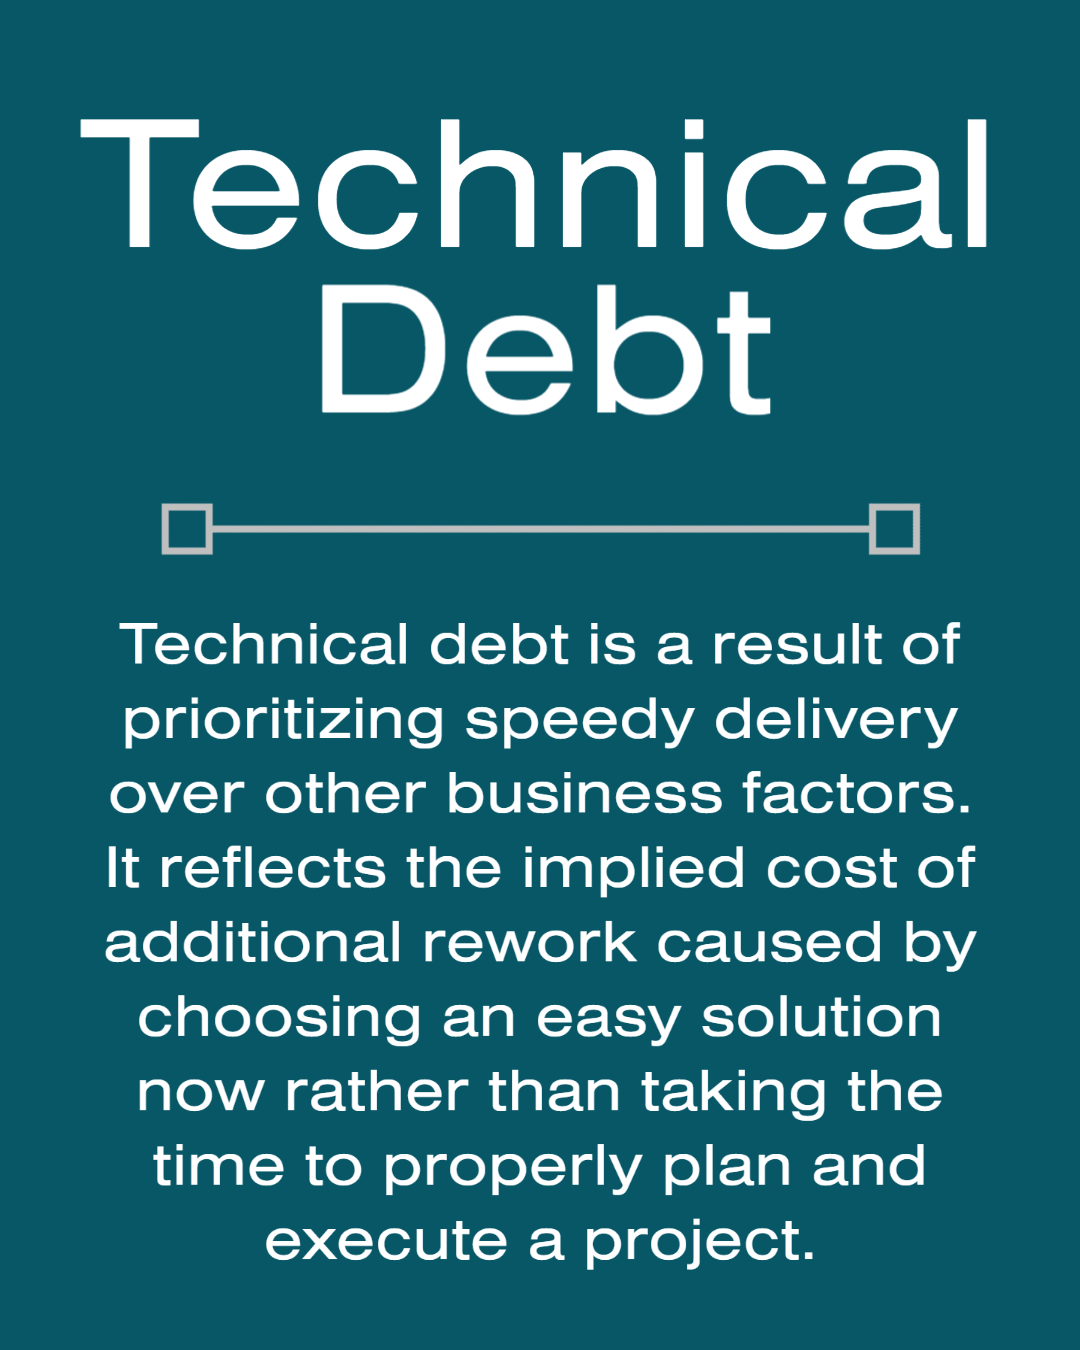 Reduce Your Technical Debt